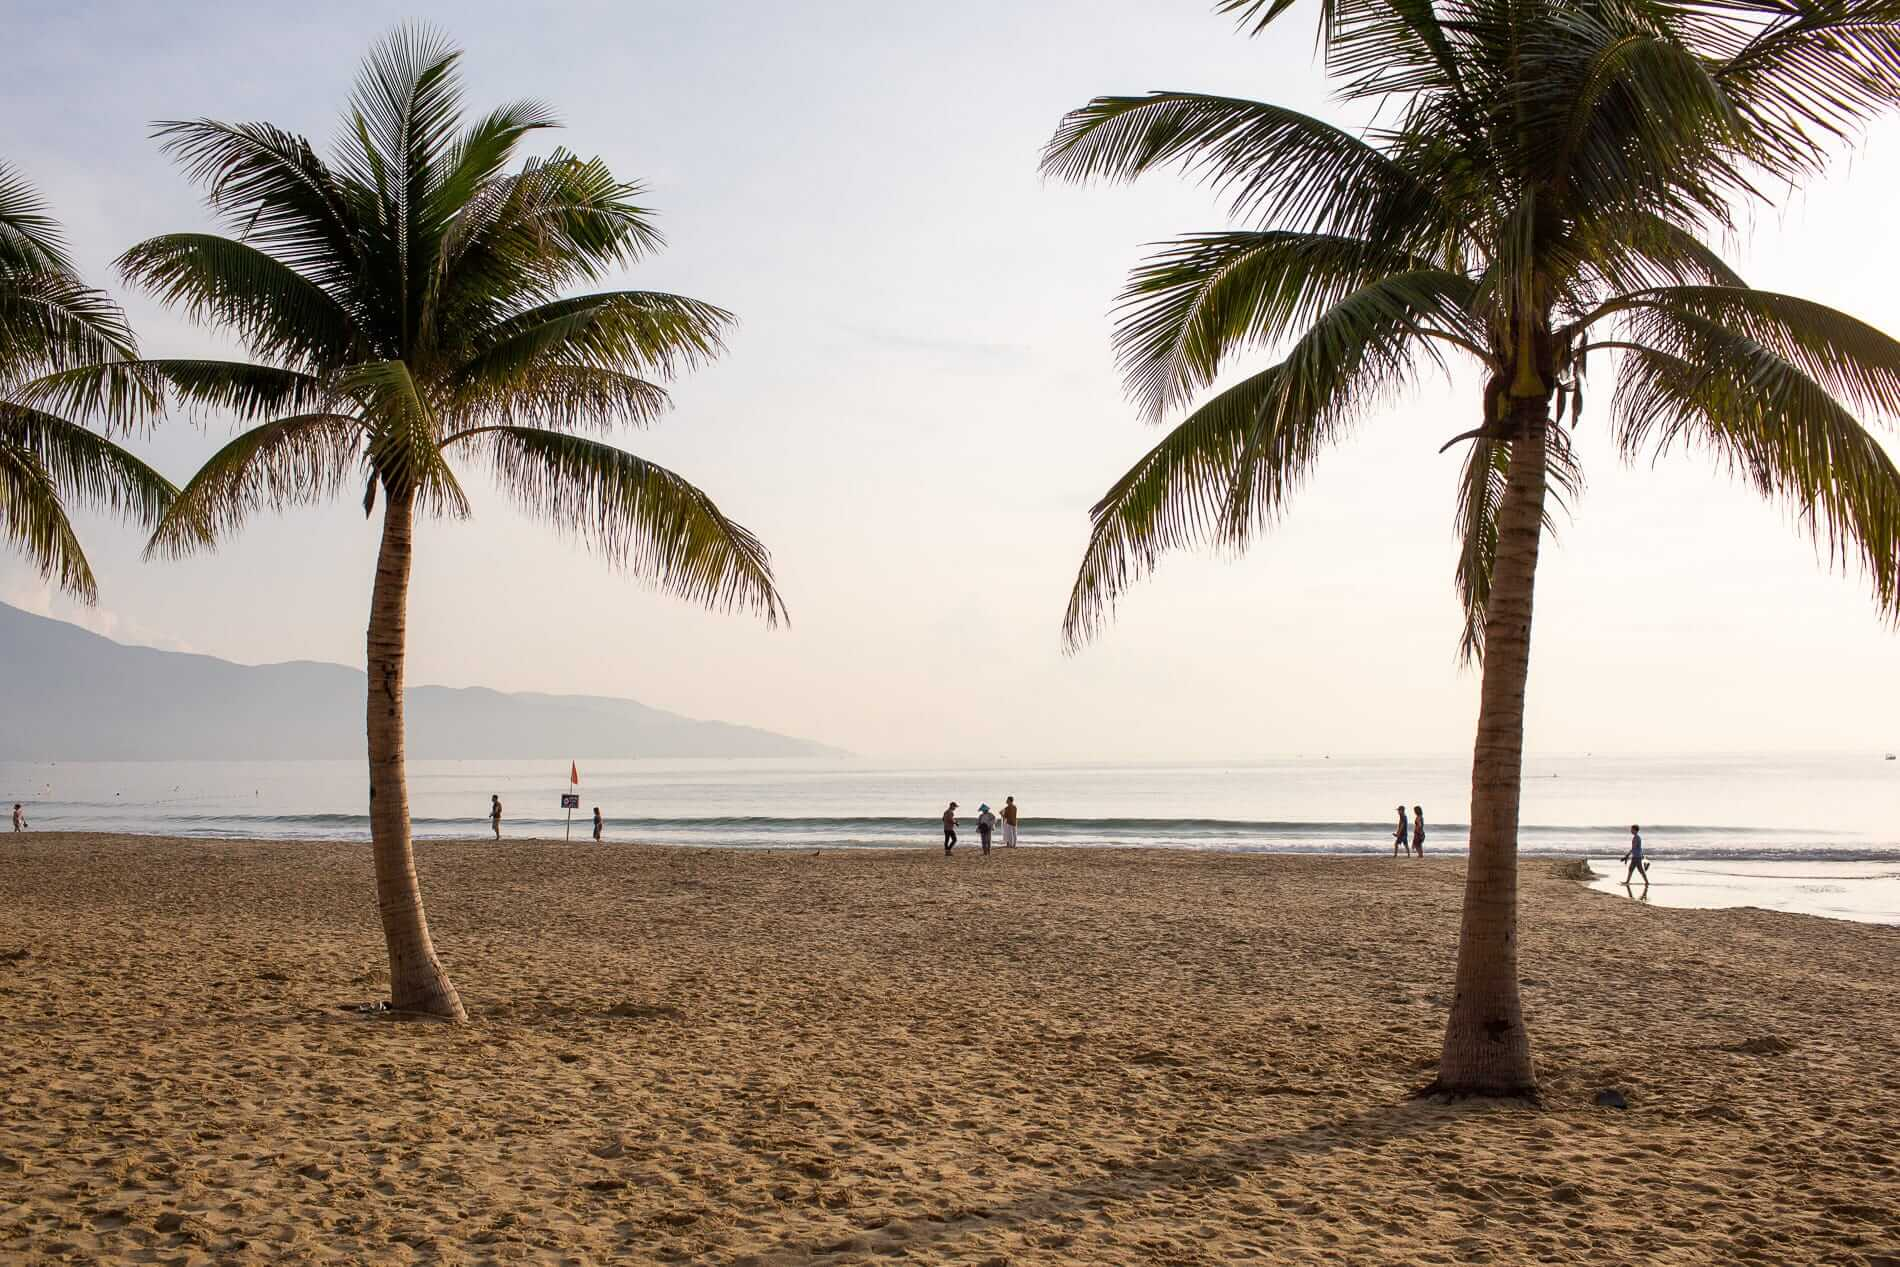 early risers at the beach of Da Nang